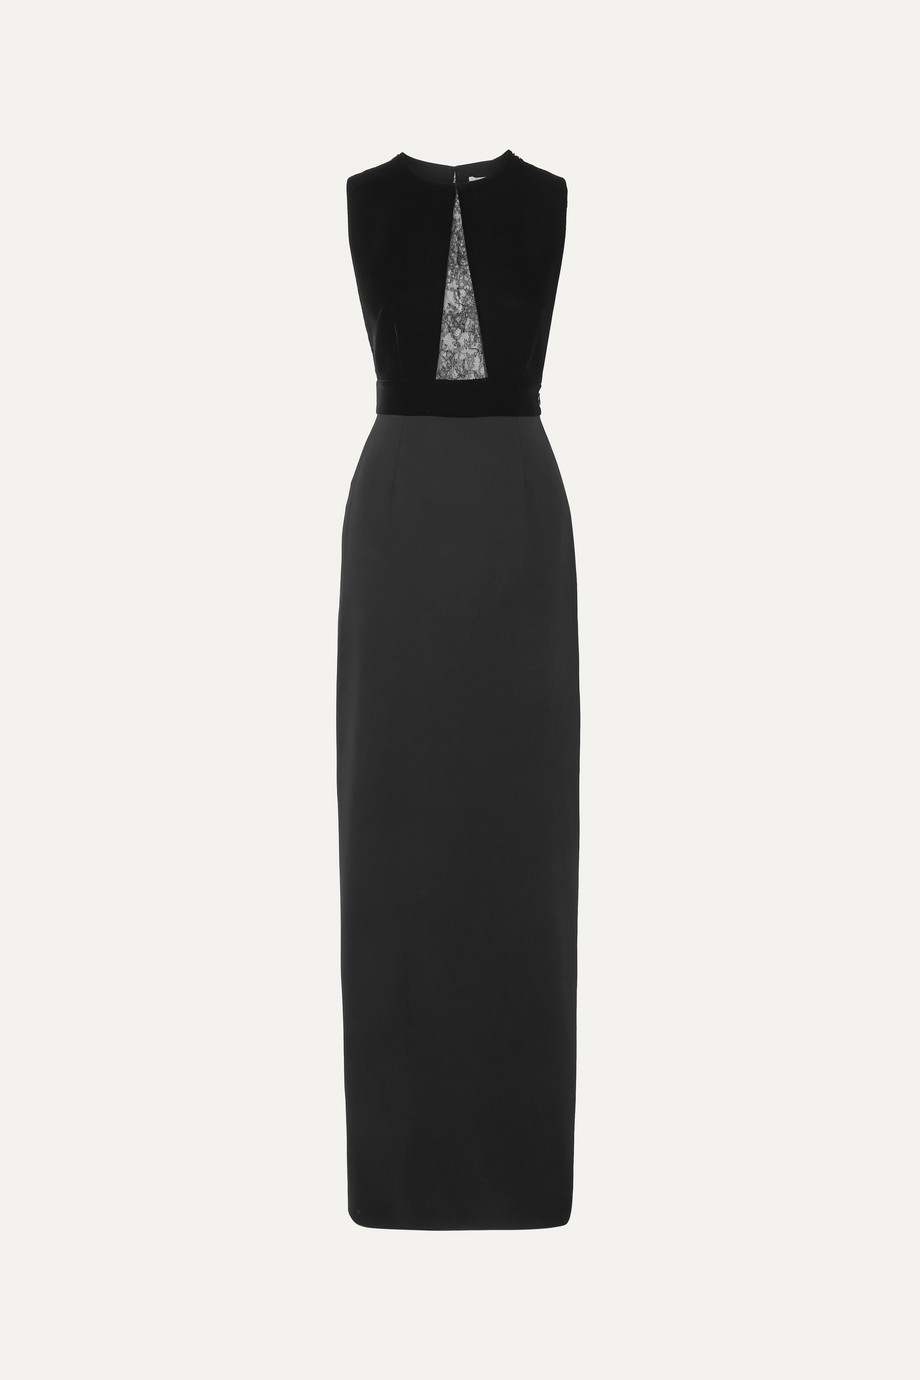 Givenchy Lace-paneled velvet and crepe gown